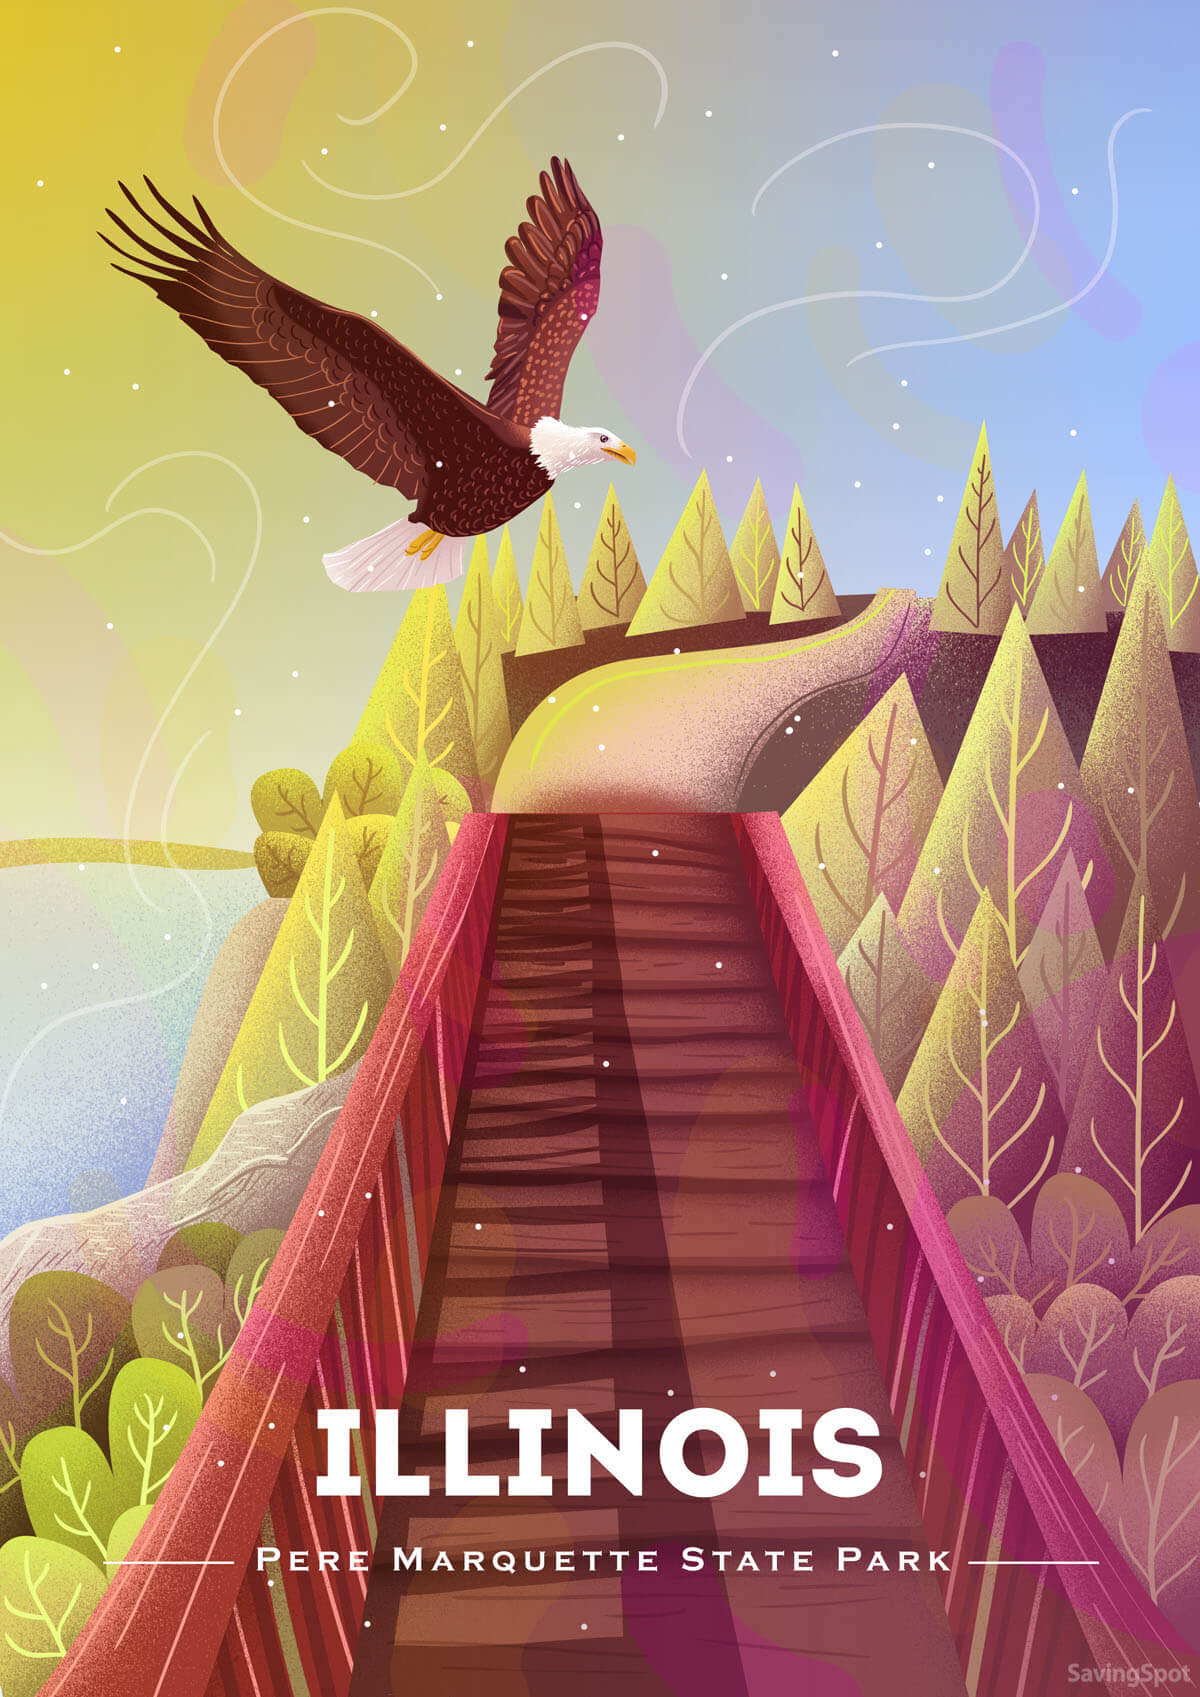 50 Most Underrated State Parks - Illinois